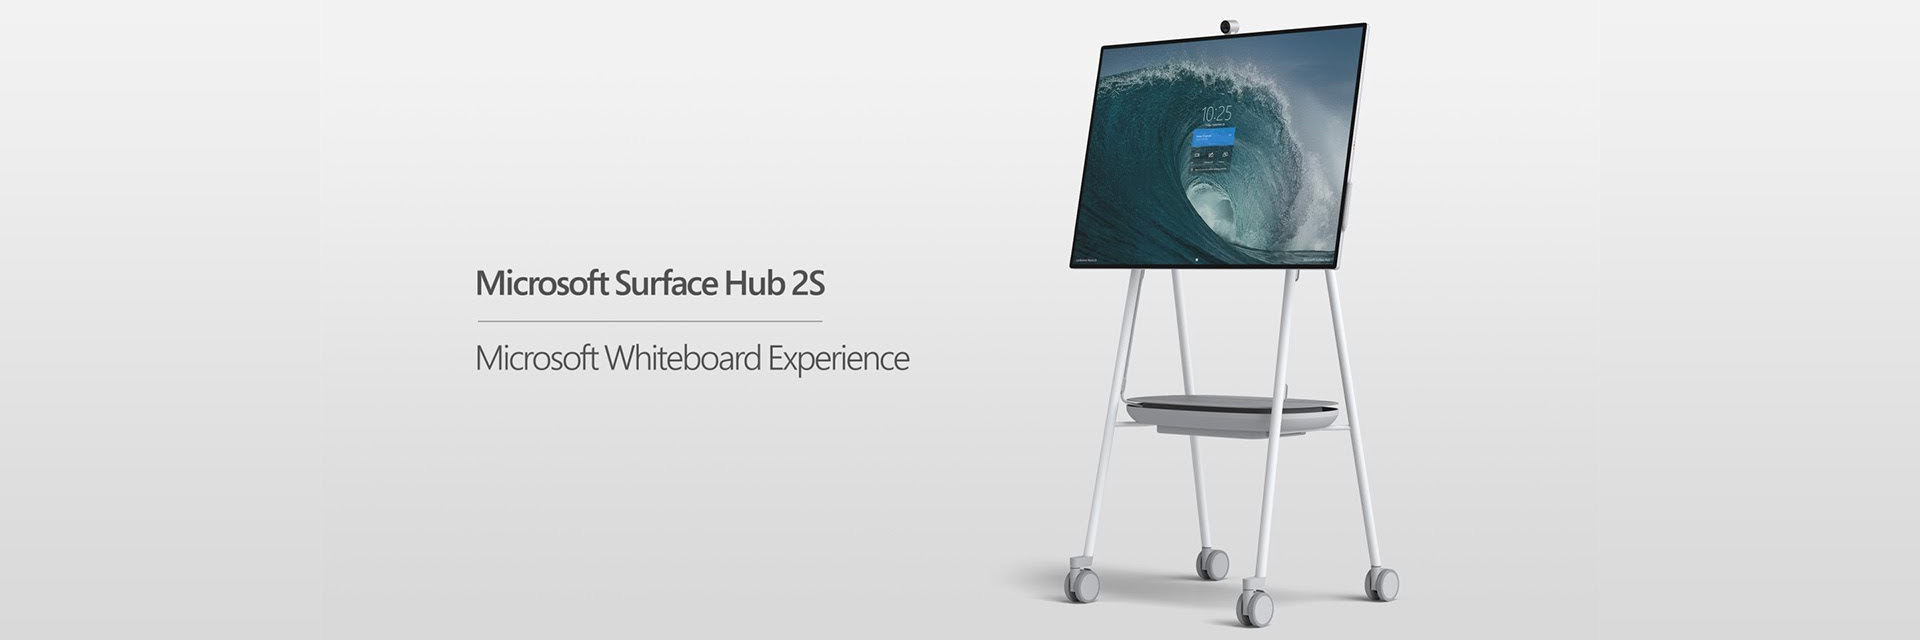 Microsoft Surface Hub2s